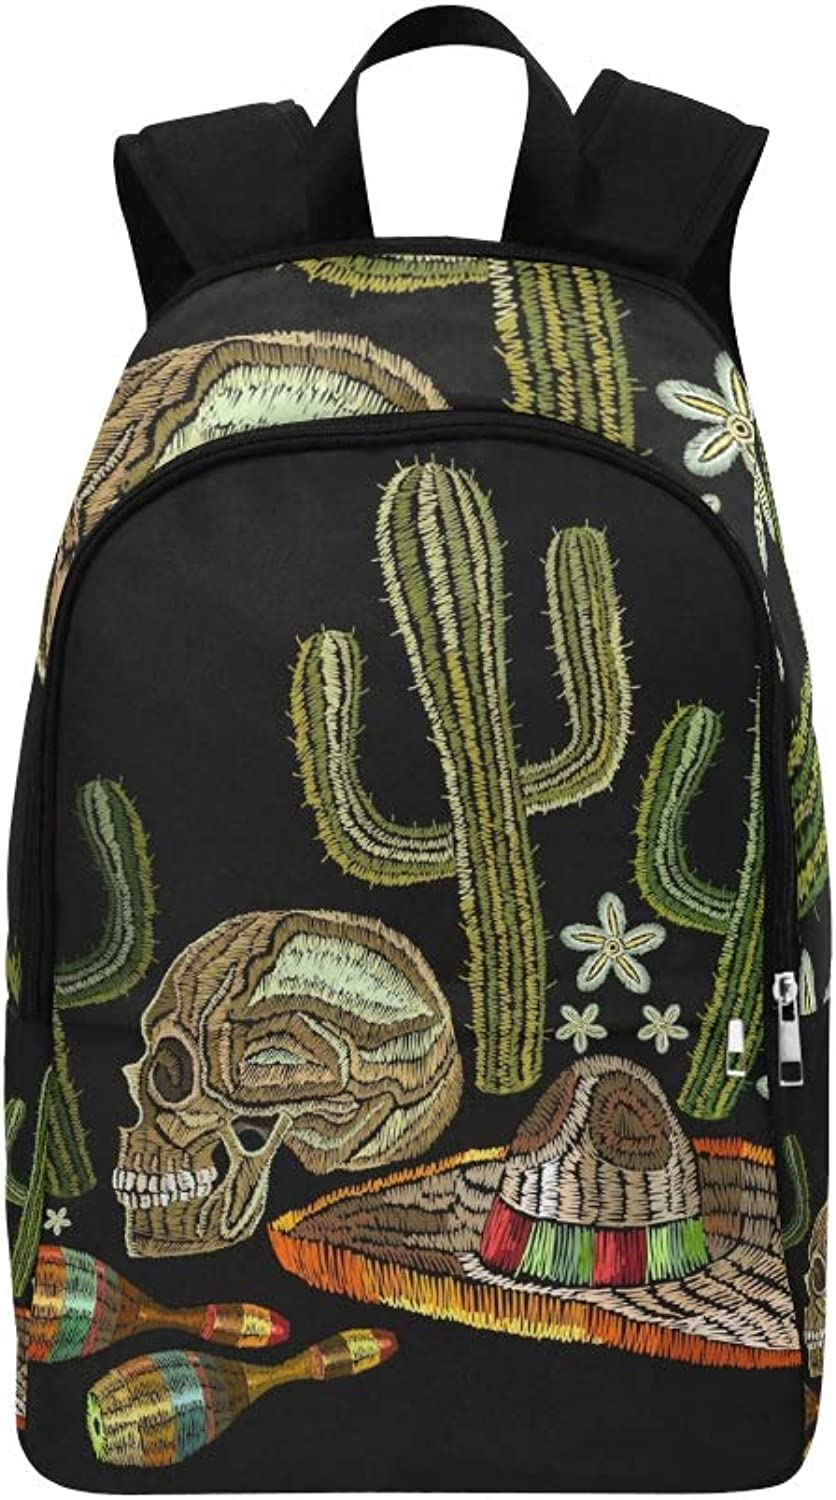 Embroidery Mexican Culture Human Skull Sombrero Casual Daypack Travel Bag College School Backpack for Mens and Women